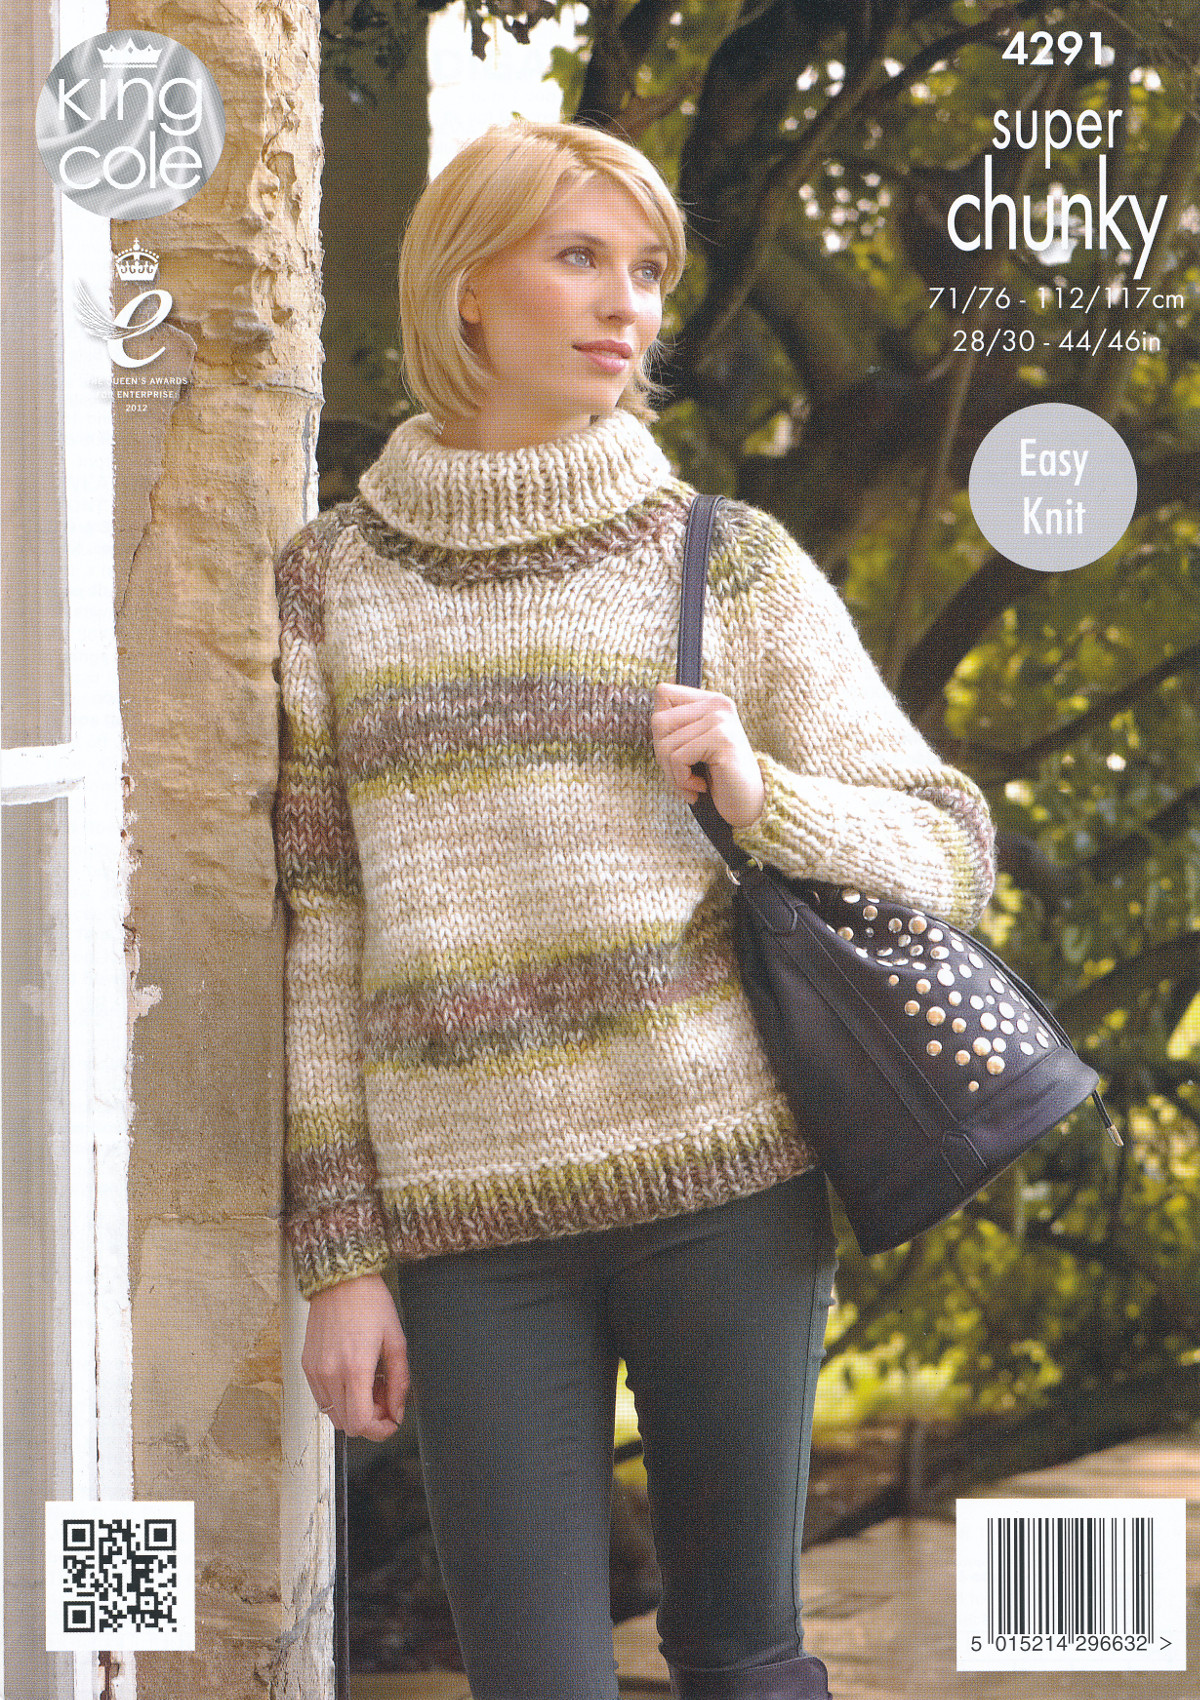 ae59c8cac0451b Ladies Super Chunky Knitting Pattern King Cole Polo Neck Jumper ...